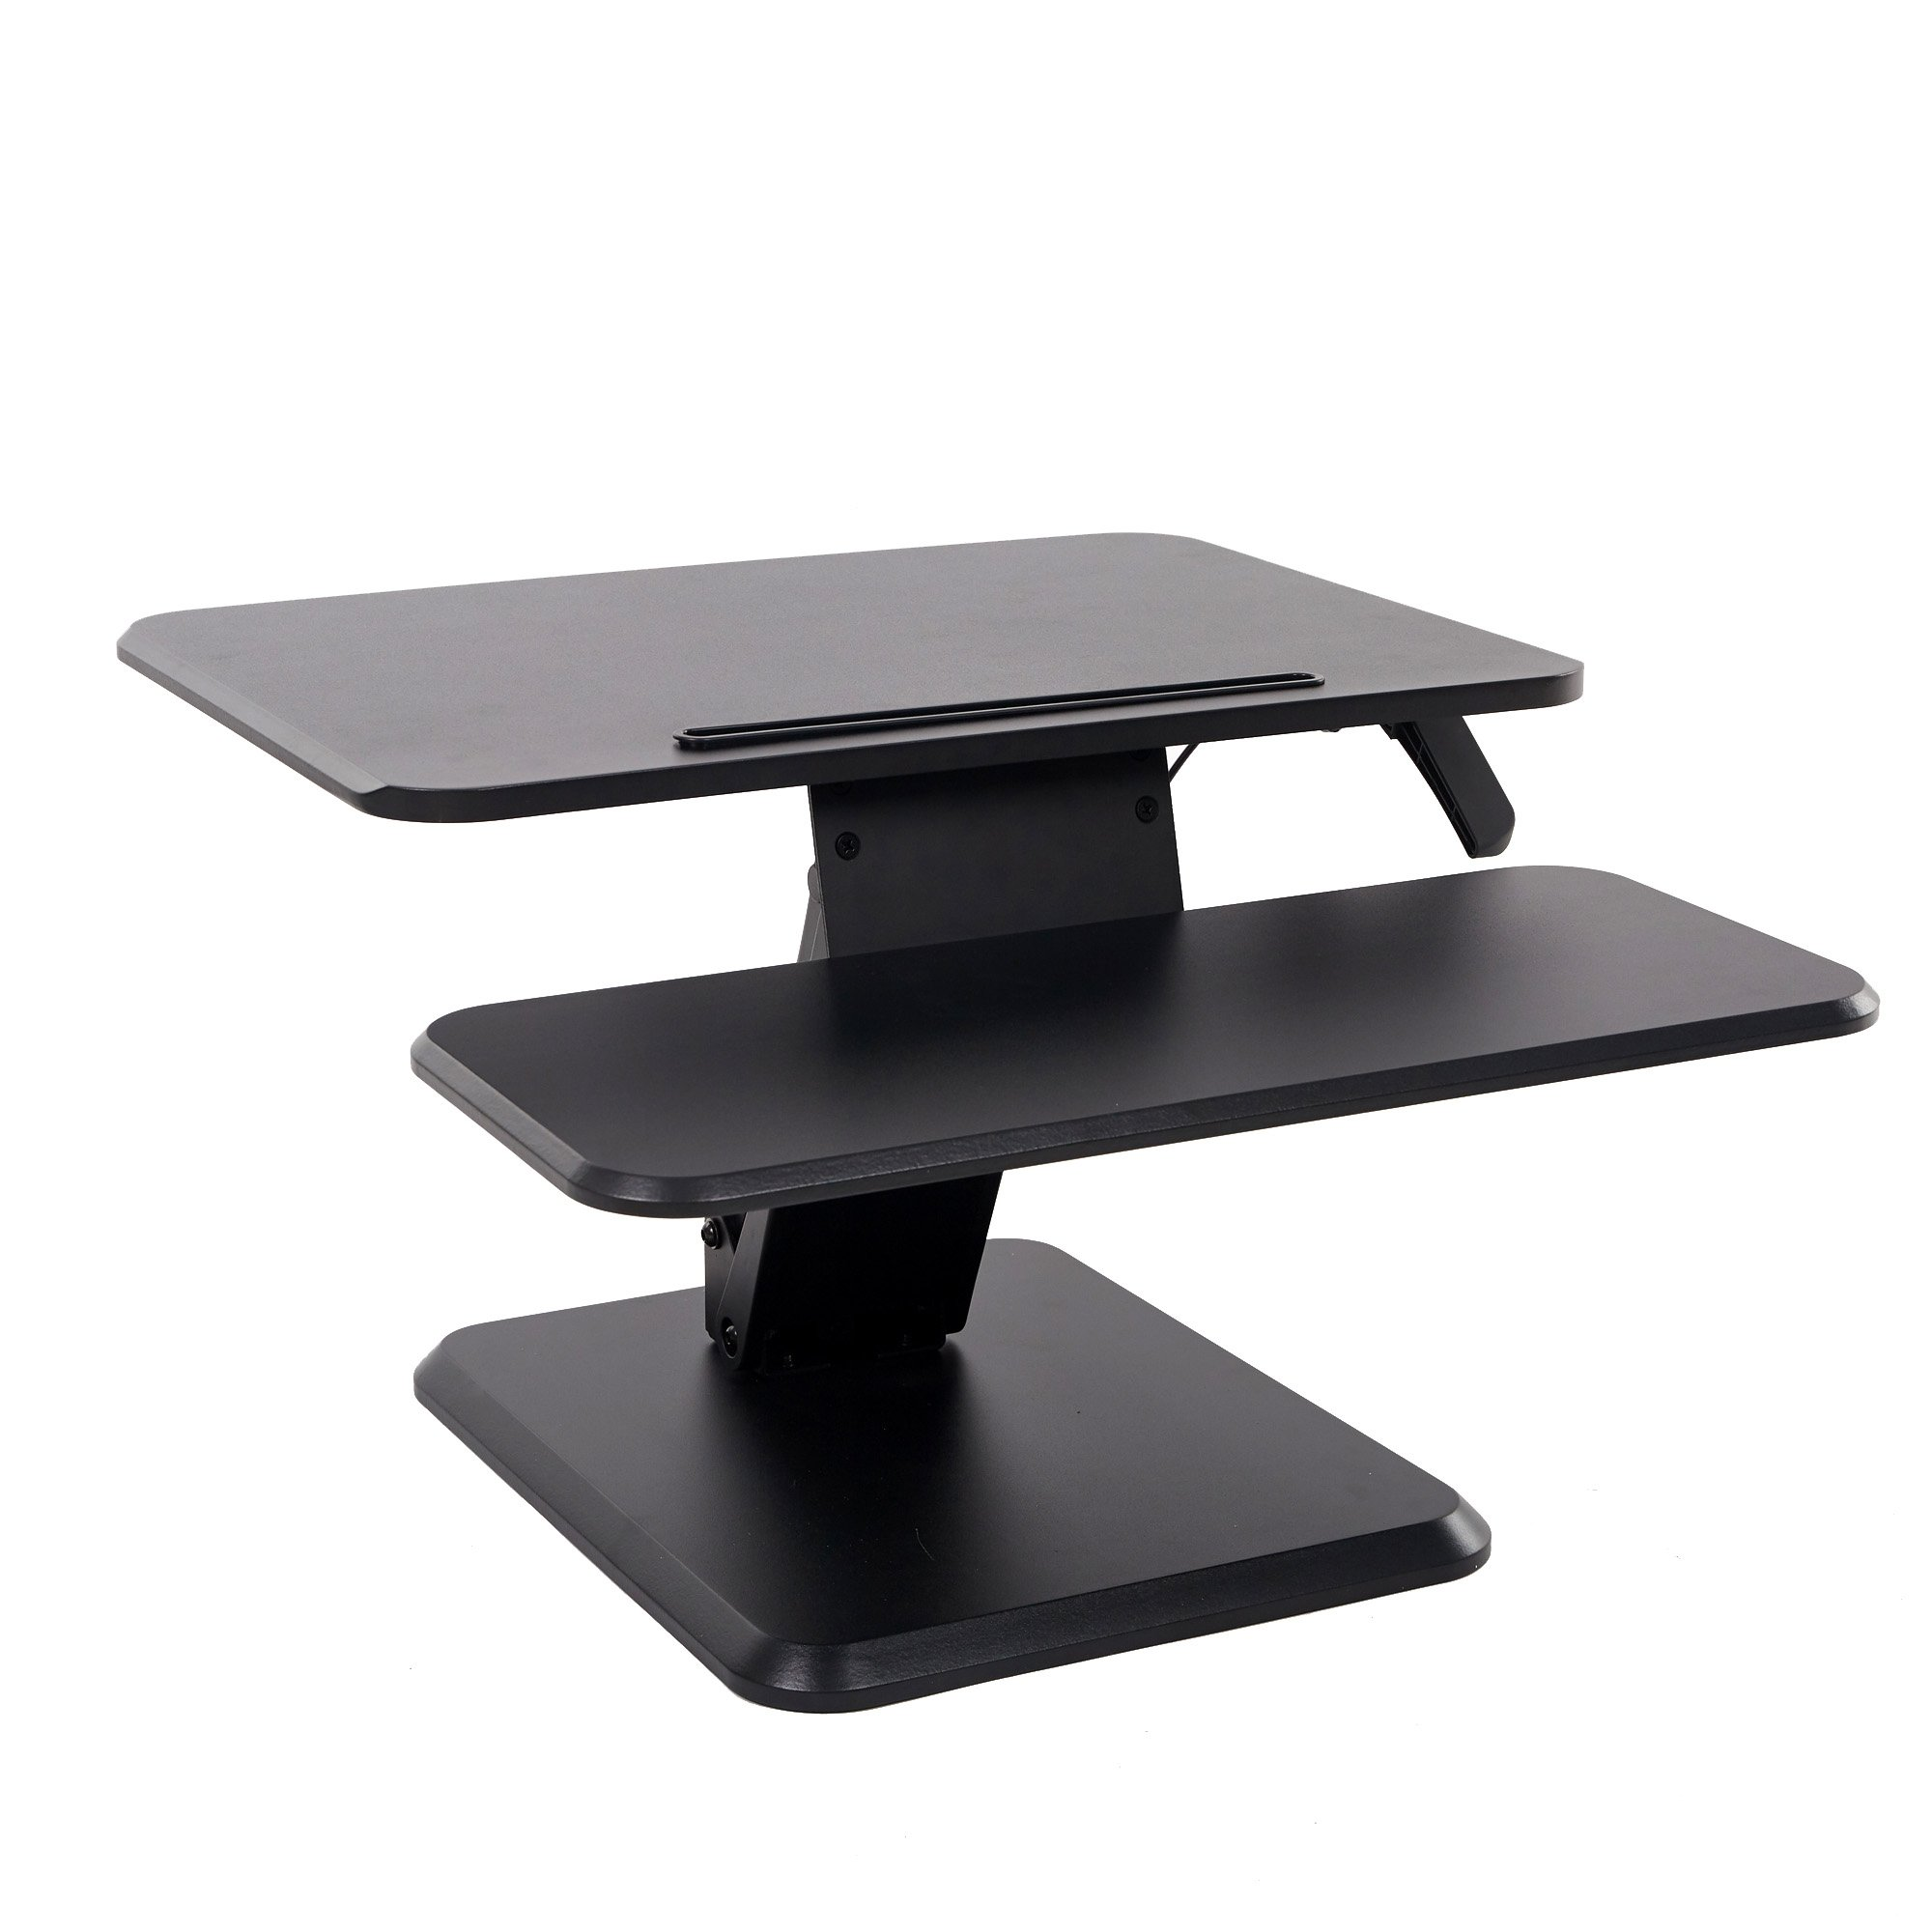 Lucky Tree Height Adjustable Standing Desk Converter Computer Monitor Riser Ergonomic Sit to Stand Desktop with Keyboard Tray for Gaming and Office